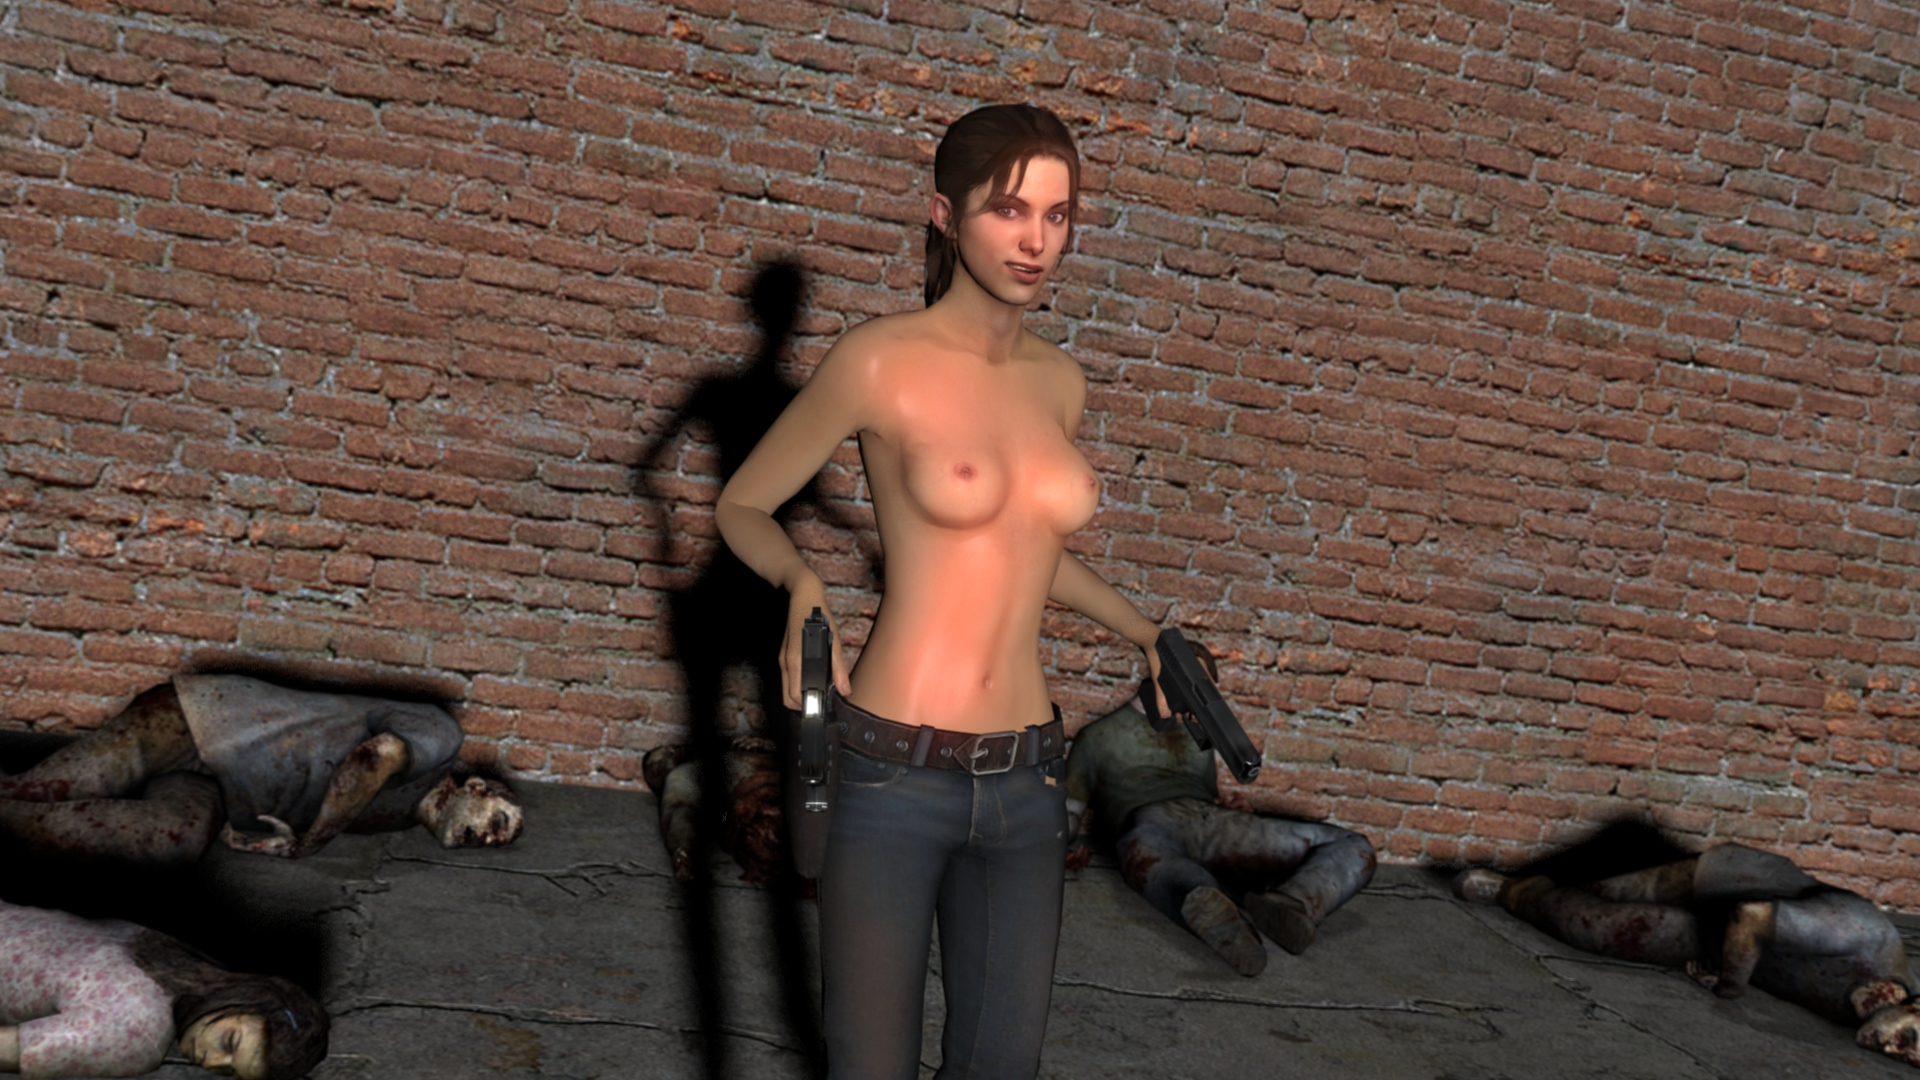 Zoey from left4dead naked sex erotic clip